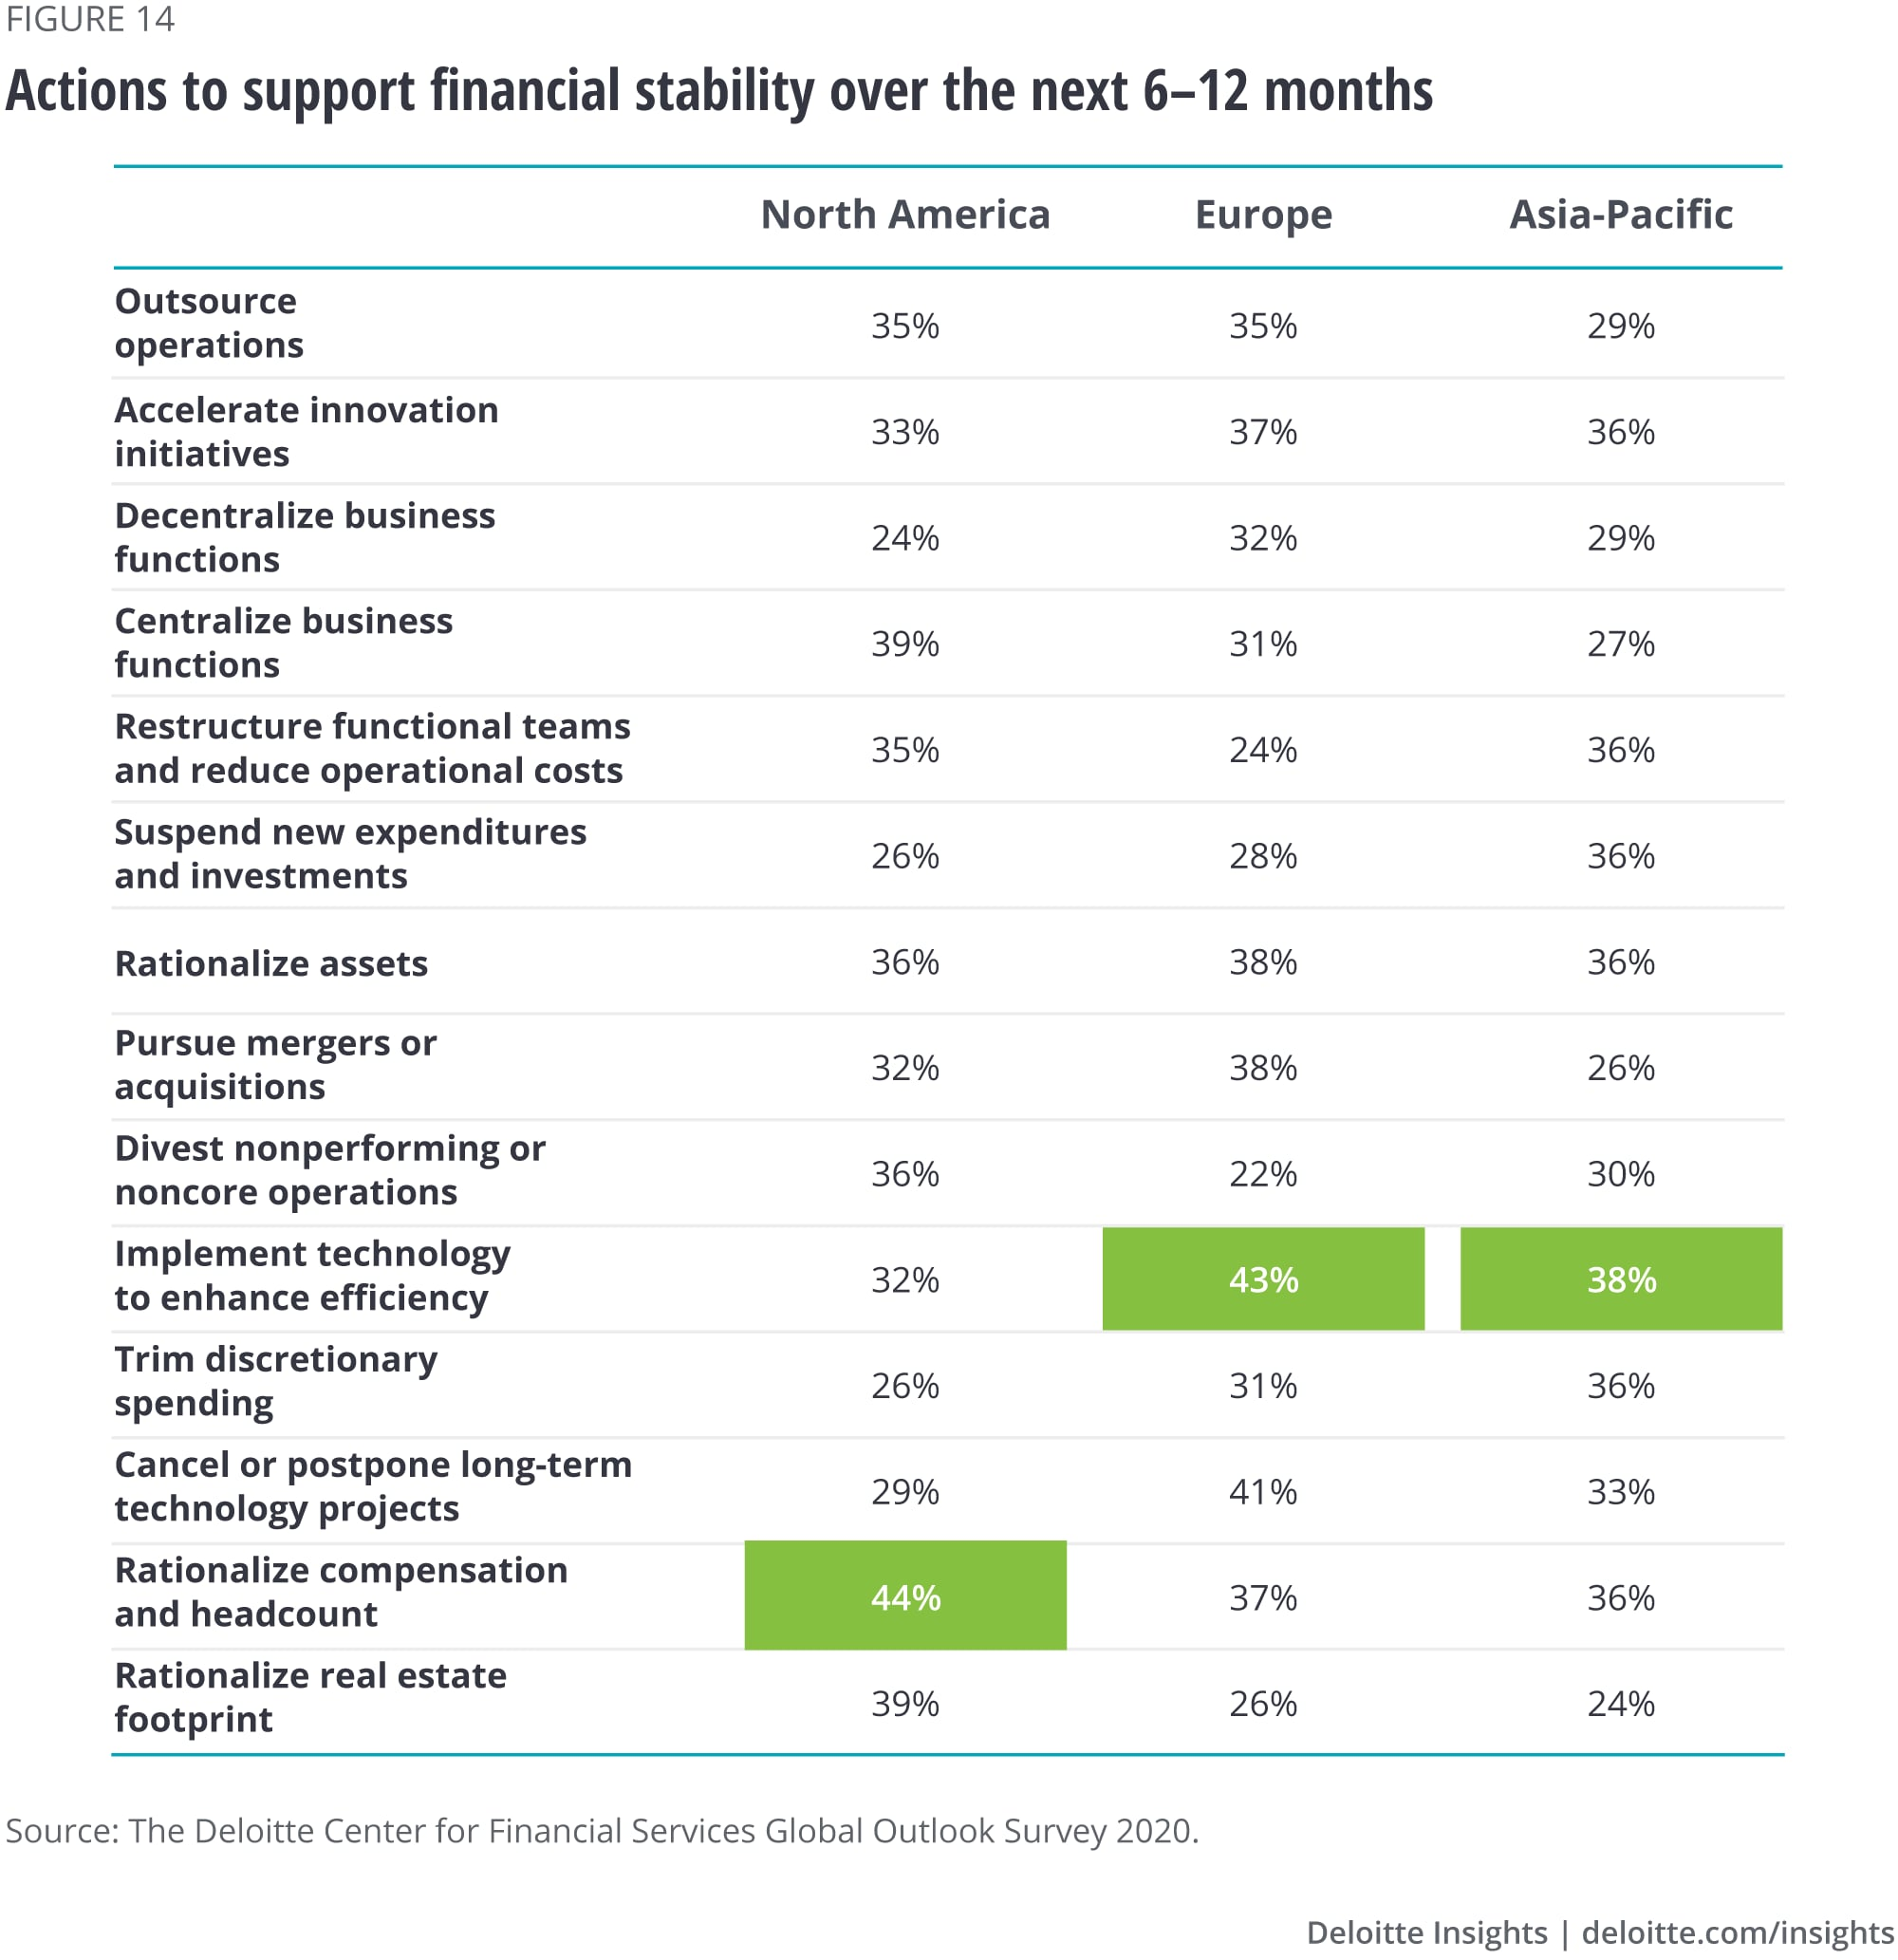 Actions to support financial stability over the next 6-12 months